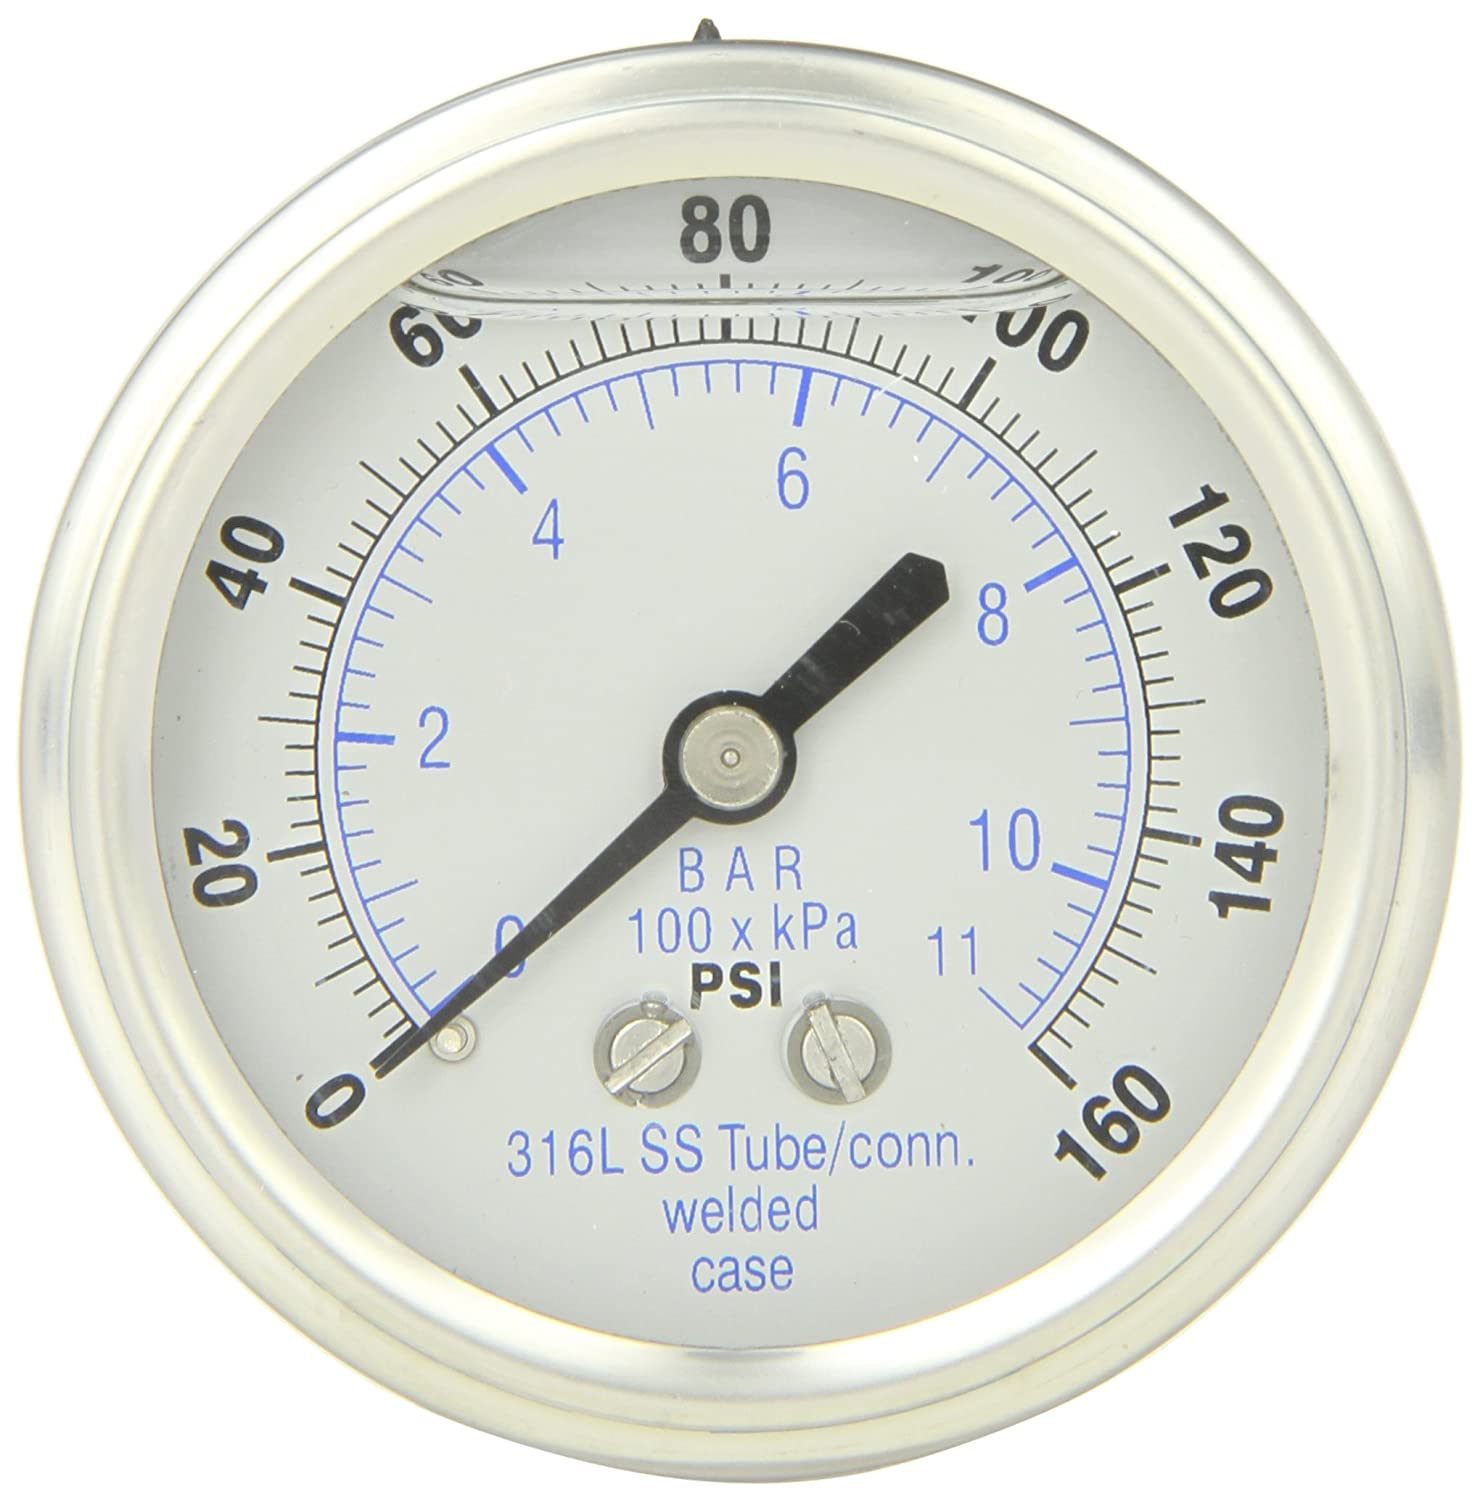 PIC Gauge 302LFW-254F Glycerin Filled Center Back Mount Pressure Gauge with Stainless Steel Case, 316 Stainless Steel Internals, Plastic Lens, Welded Connection, 2-1/2